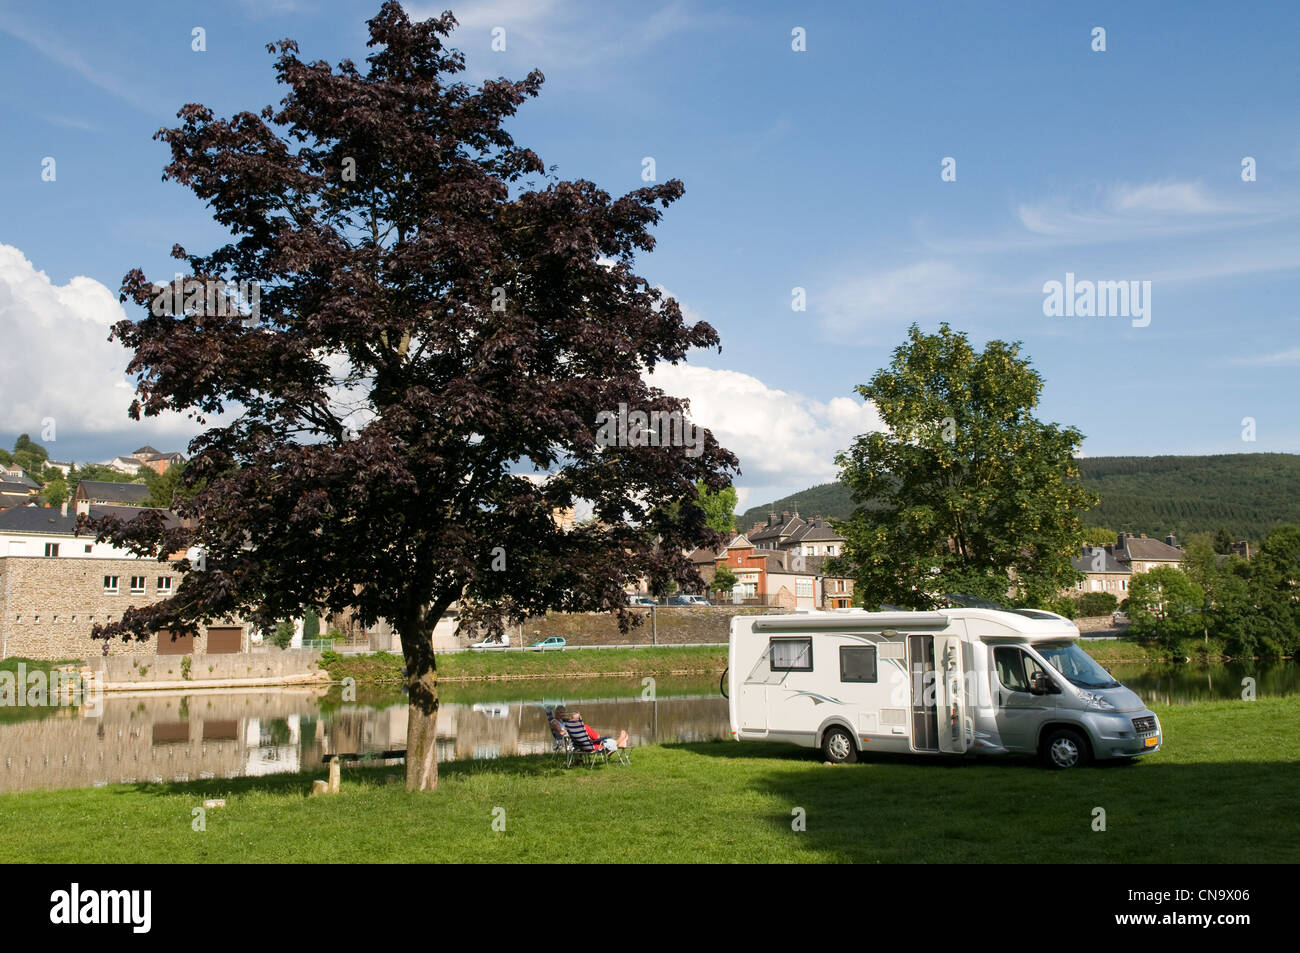 France, Ardennes, Montherme, camper on the edges of Meuse - Stock Image